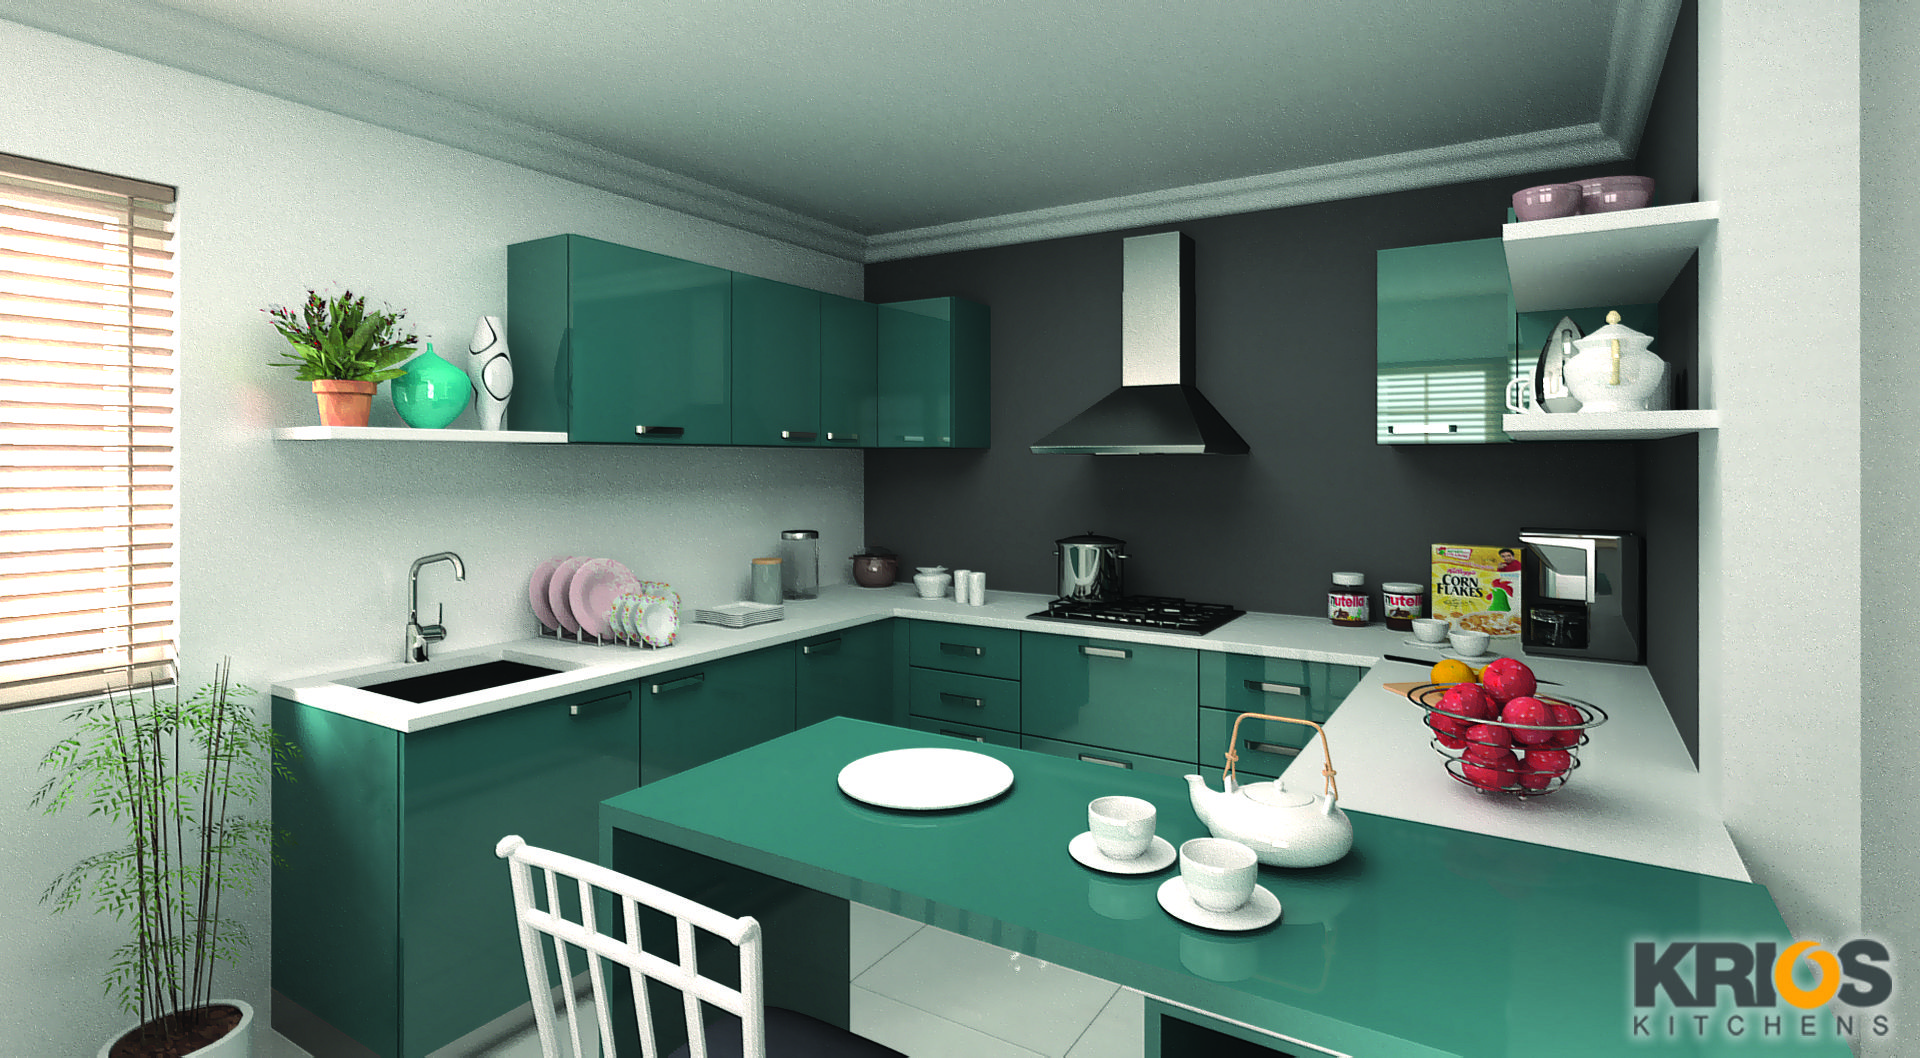 16 u shape modular kitchen design 2 interior design kitchen modular kitchen cabinets on u kitchen interior id=13532